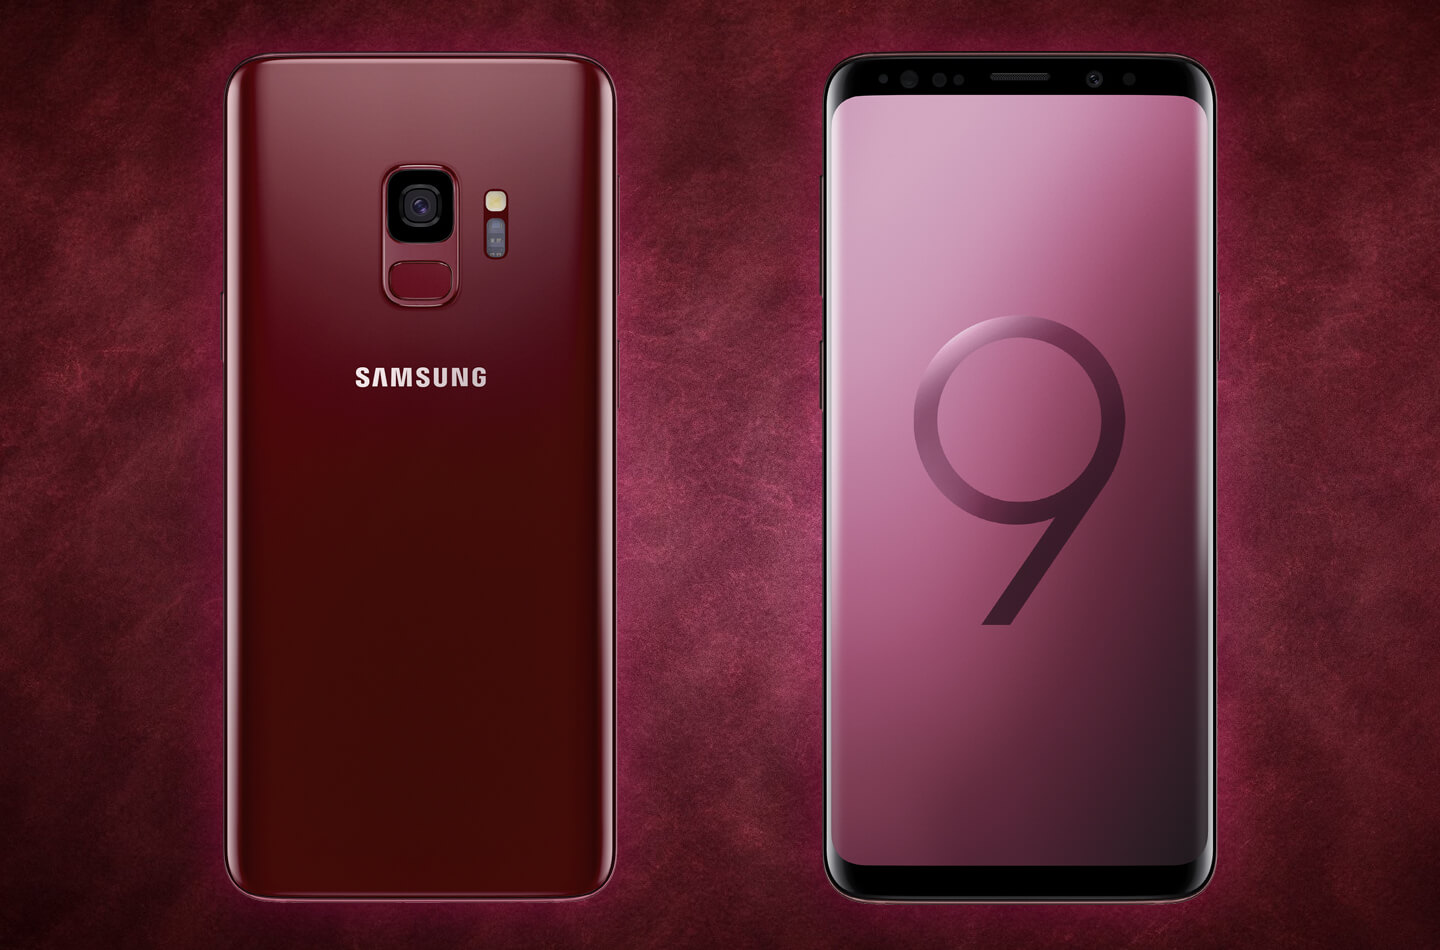 samsung galaxy s9 sunrise gold and burgundy red editions. Black Bedroom Furniture Sets. Home Design Ideas